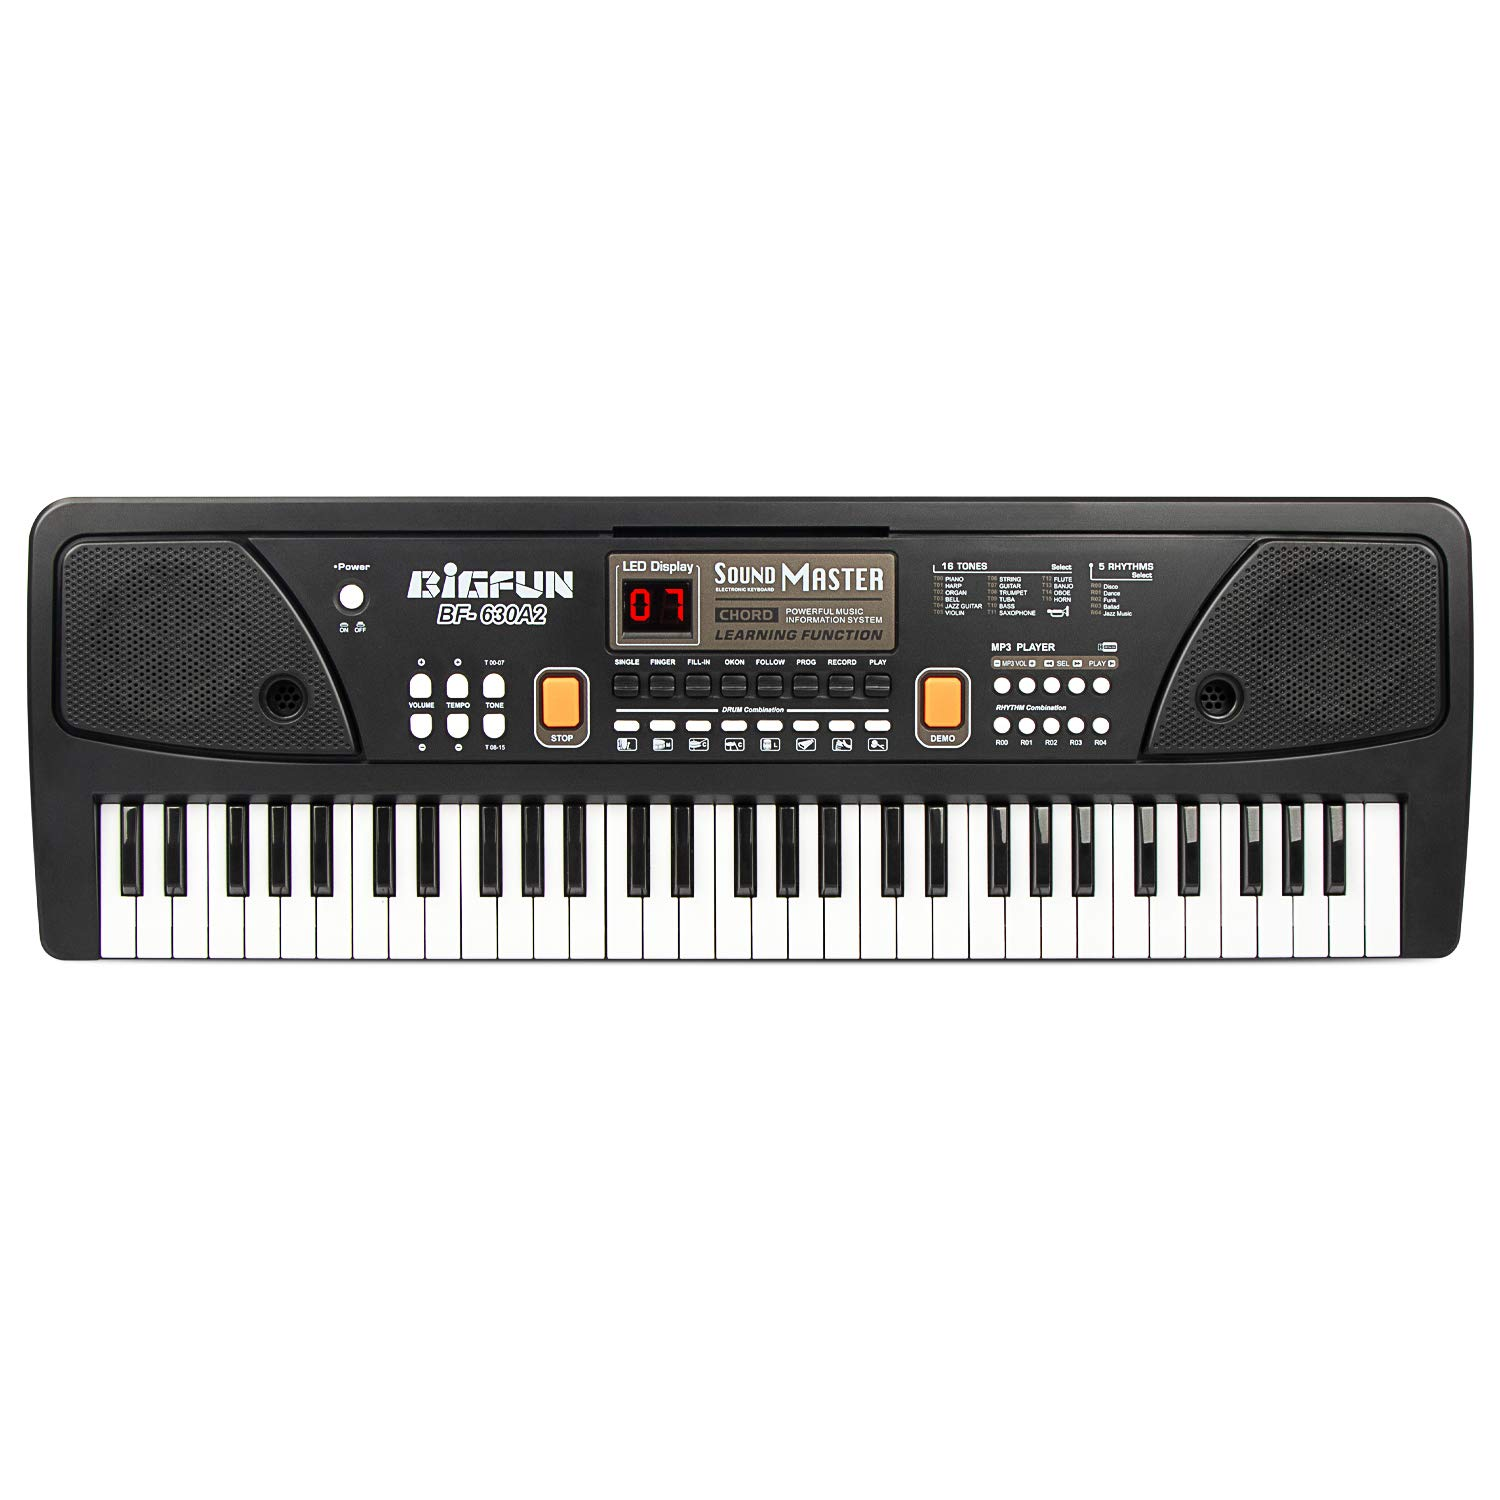 BIGFUN 61 Keys Multifunction Portable Electronic Kids Piano Musical Teaching Keyboard for Kids Children Early Learning Educational Toy with Double Speakers (Black) by BIGFUN